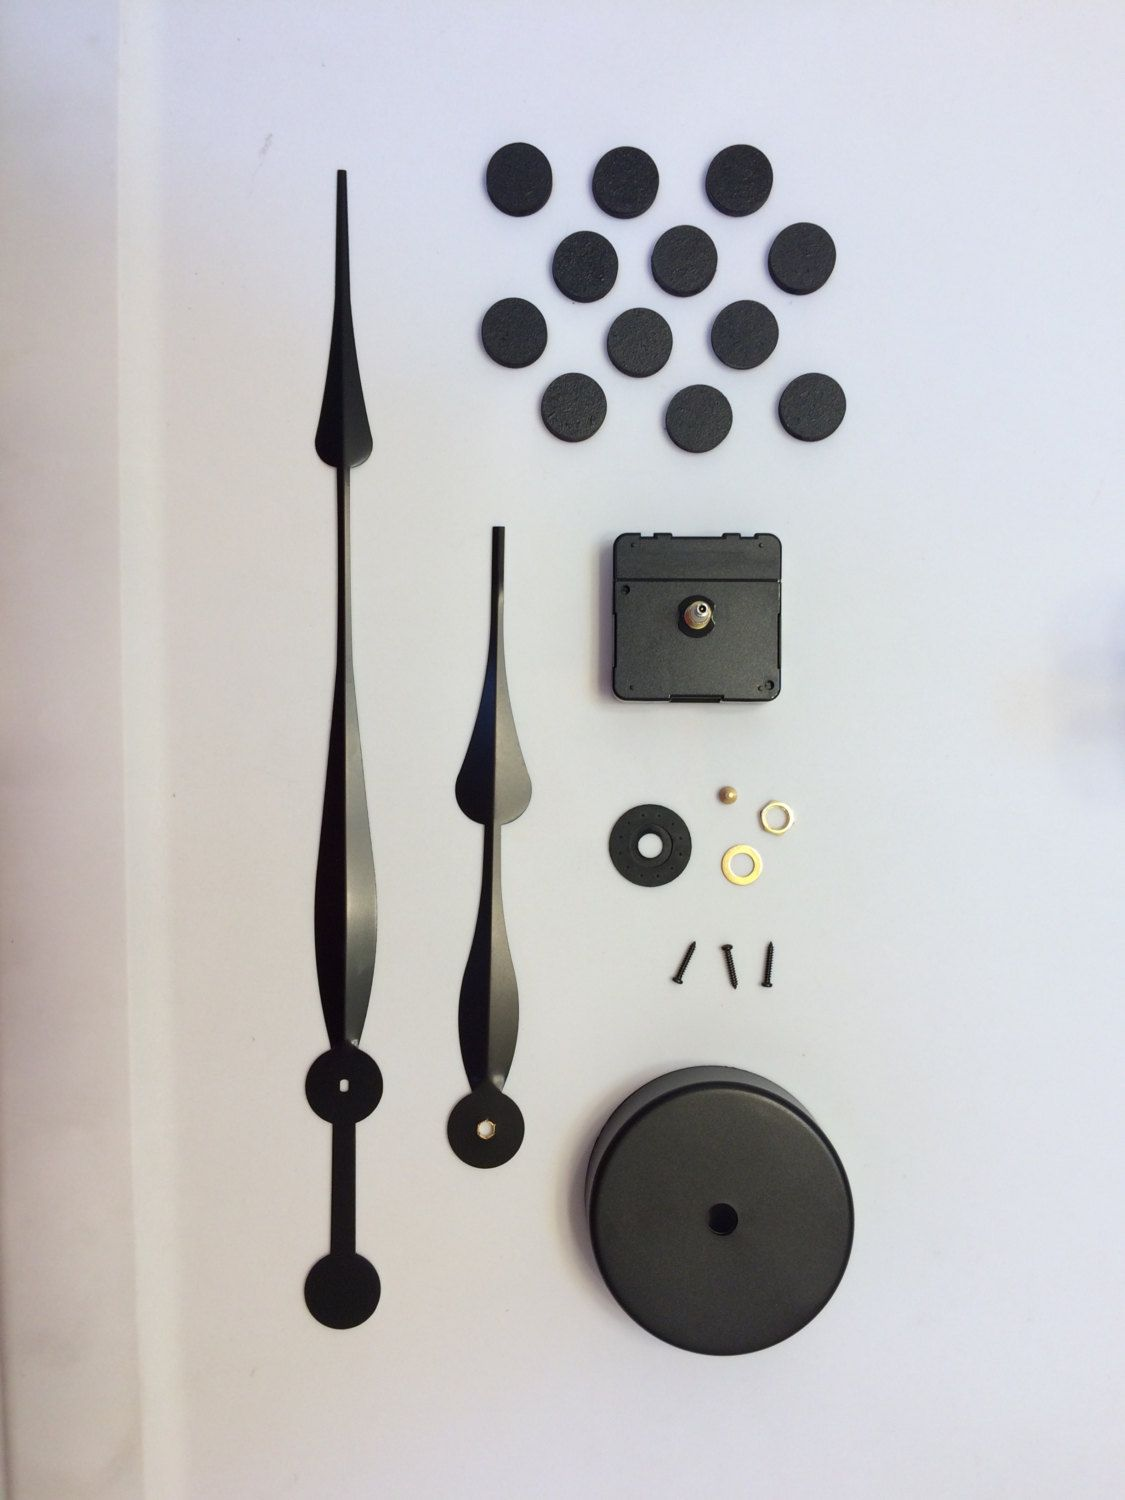 Large wall clock kit choose your hand length wall clock kits be creative and make your own wall clock with this kit your package will include amipublicfo Image collections